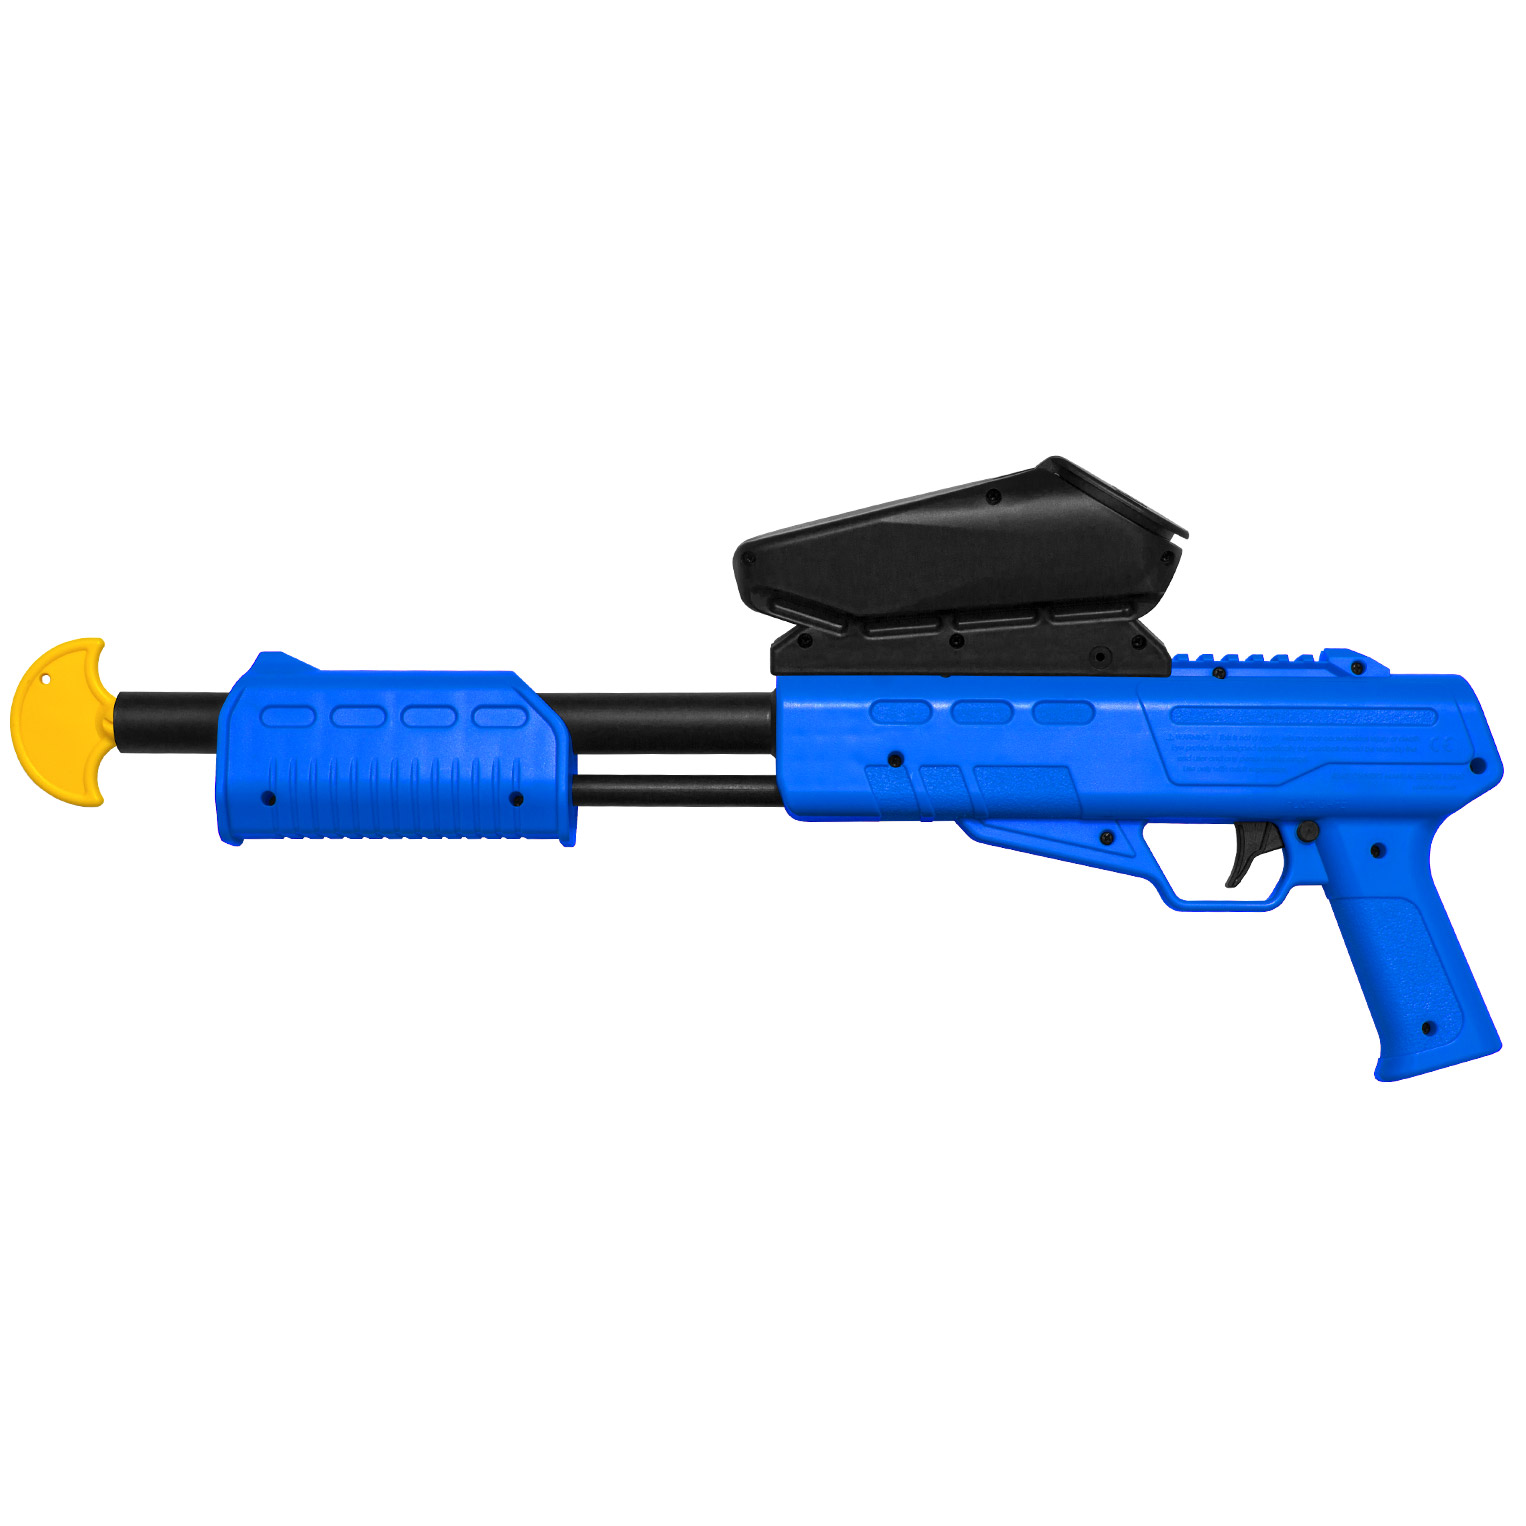 PAINTBALL MARKERS CAL. 50 (0.5 J) INCL.LOADER (BLUE) - Free Shipping